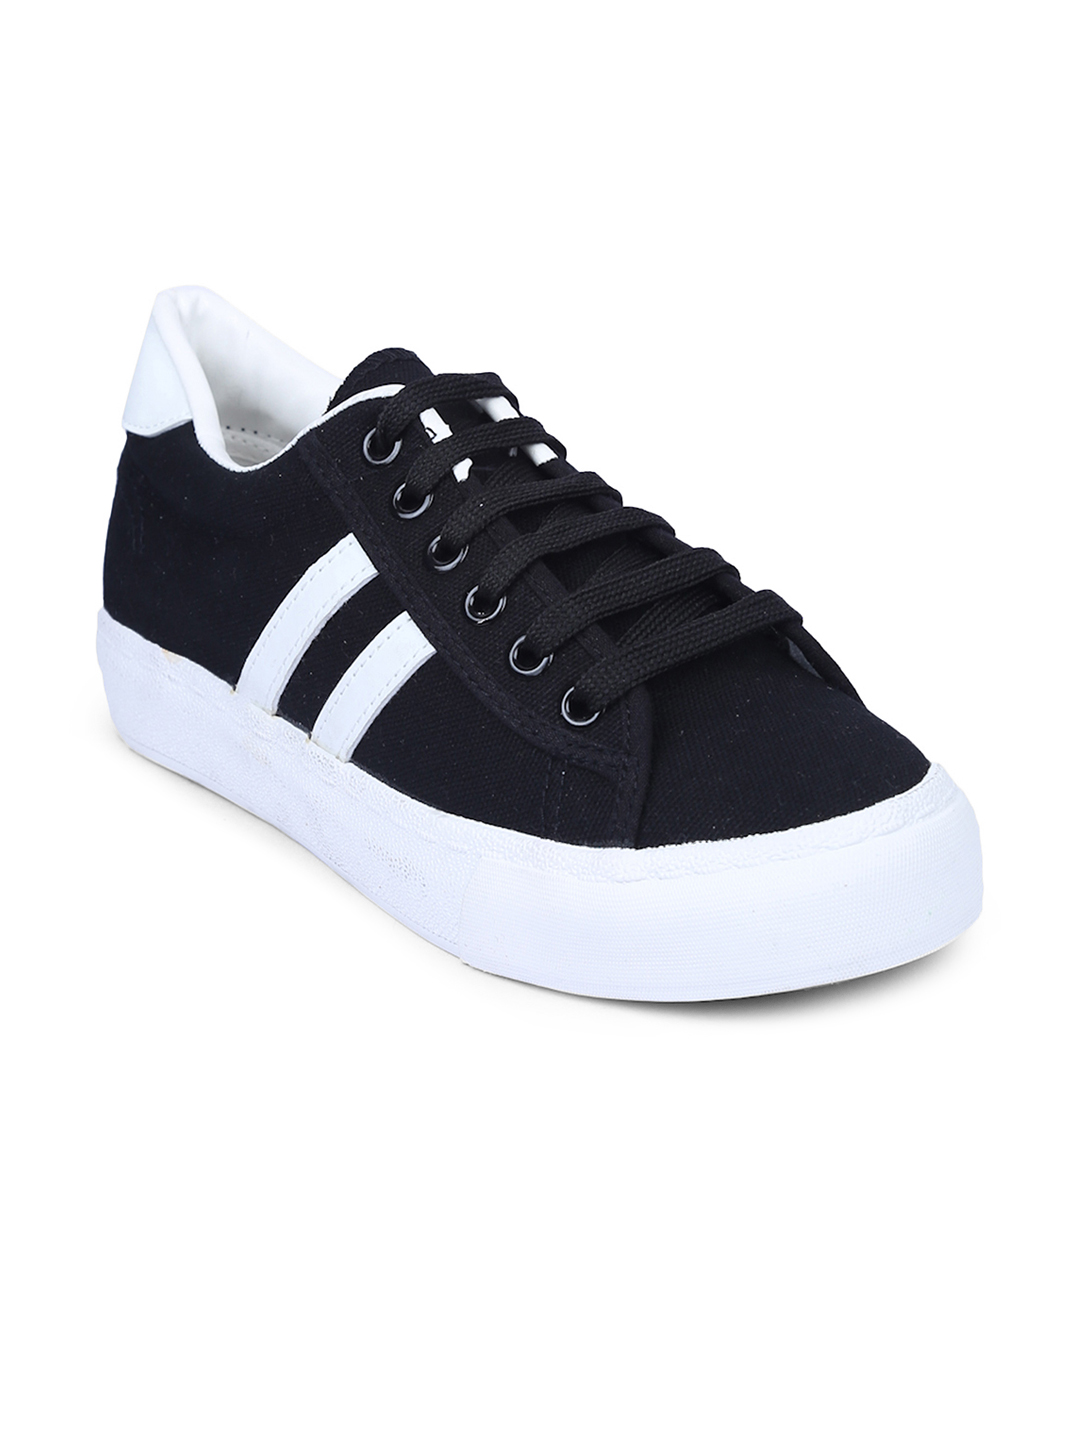 Lovely Chick Women Black Sneakers Price in India